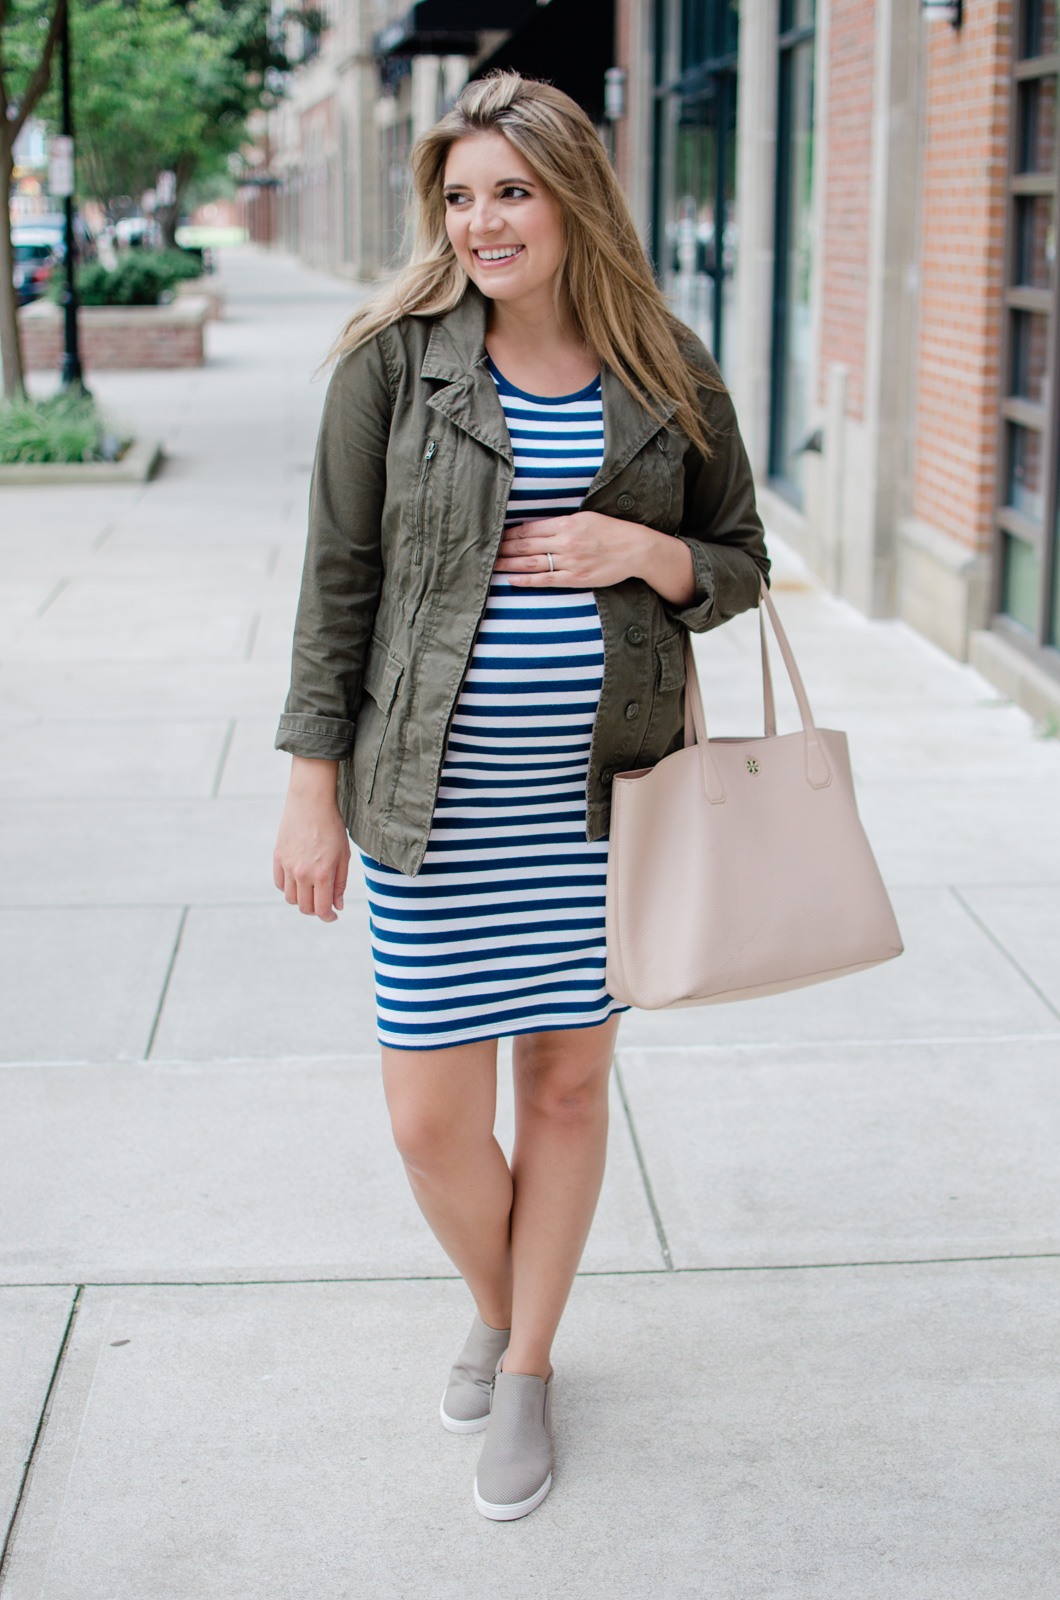 maternity outfit - fall pregnancy outfit idea with stripe maternity dress and a cargo jacket | bylaurenm.com